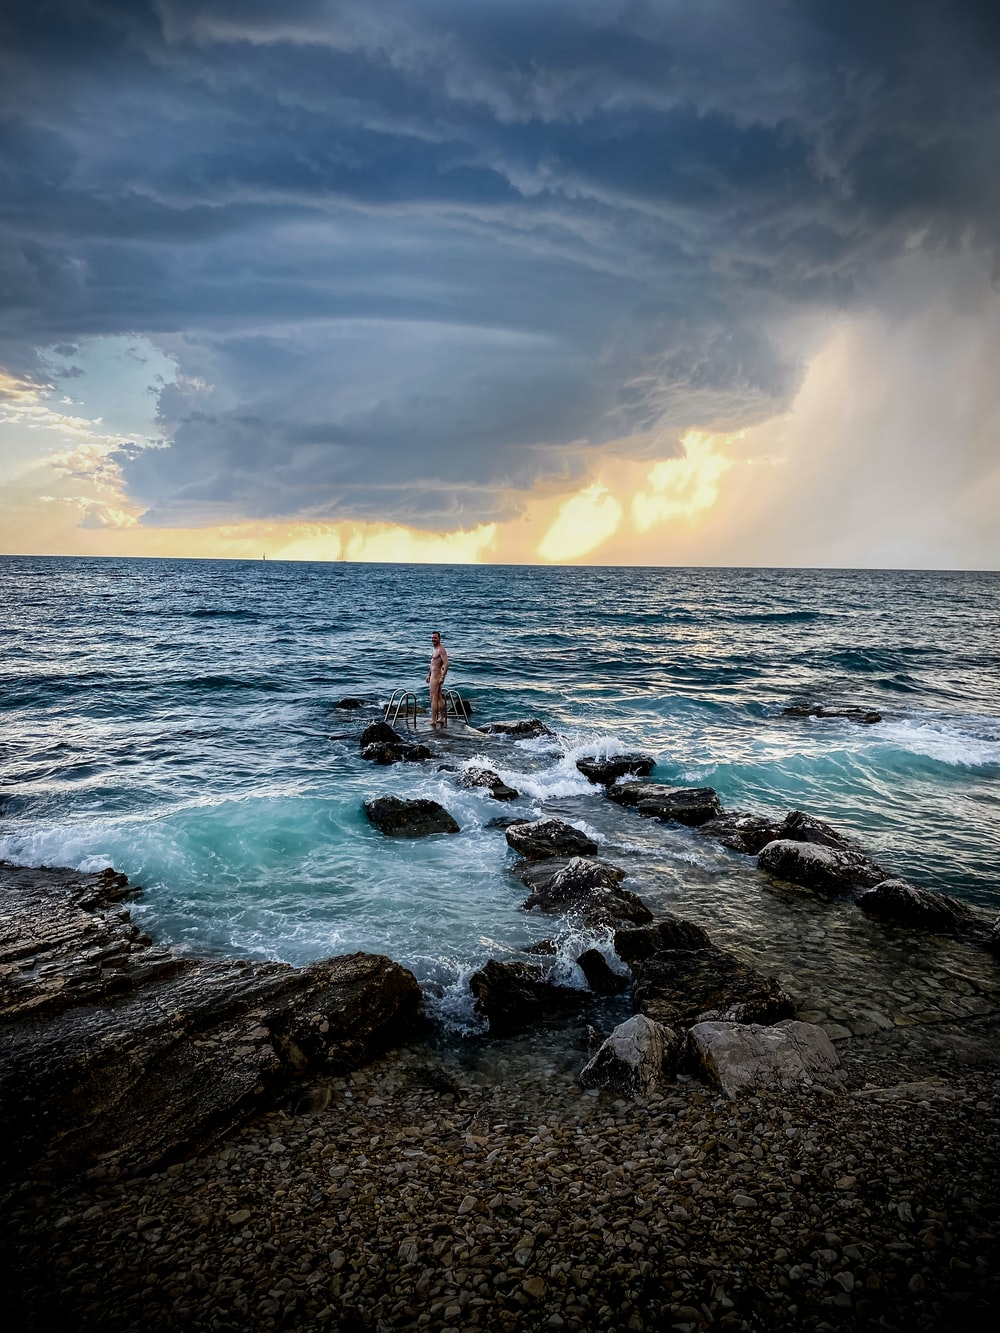 person standing on rock formation in sea during daytime